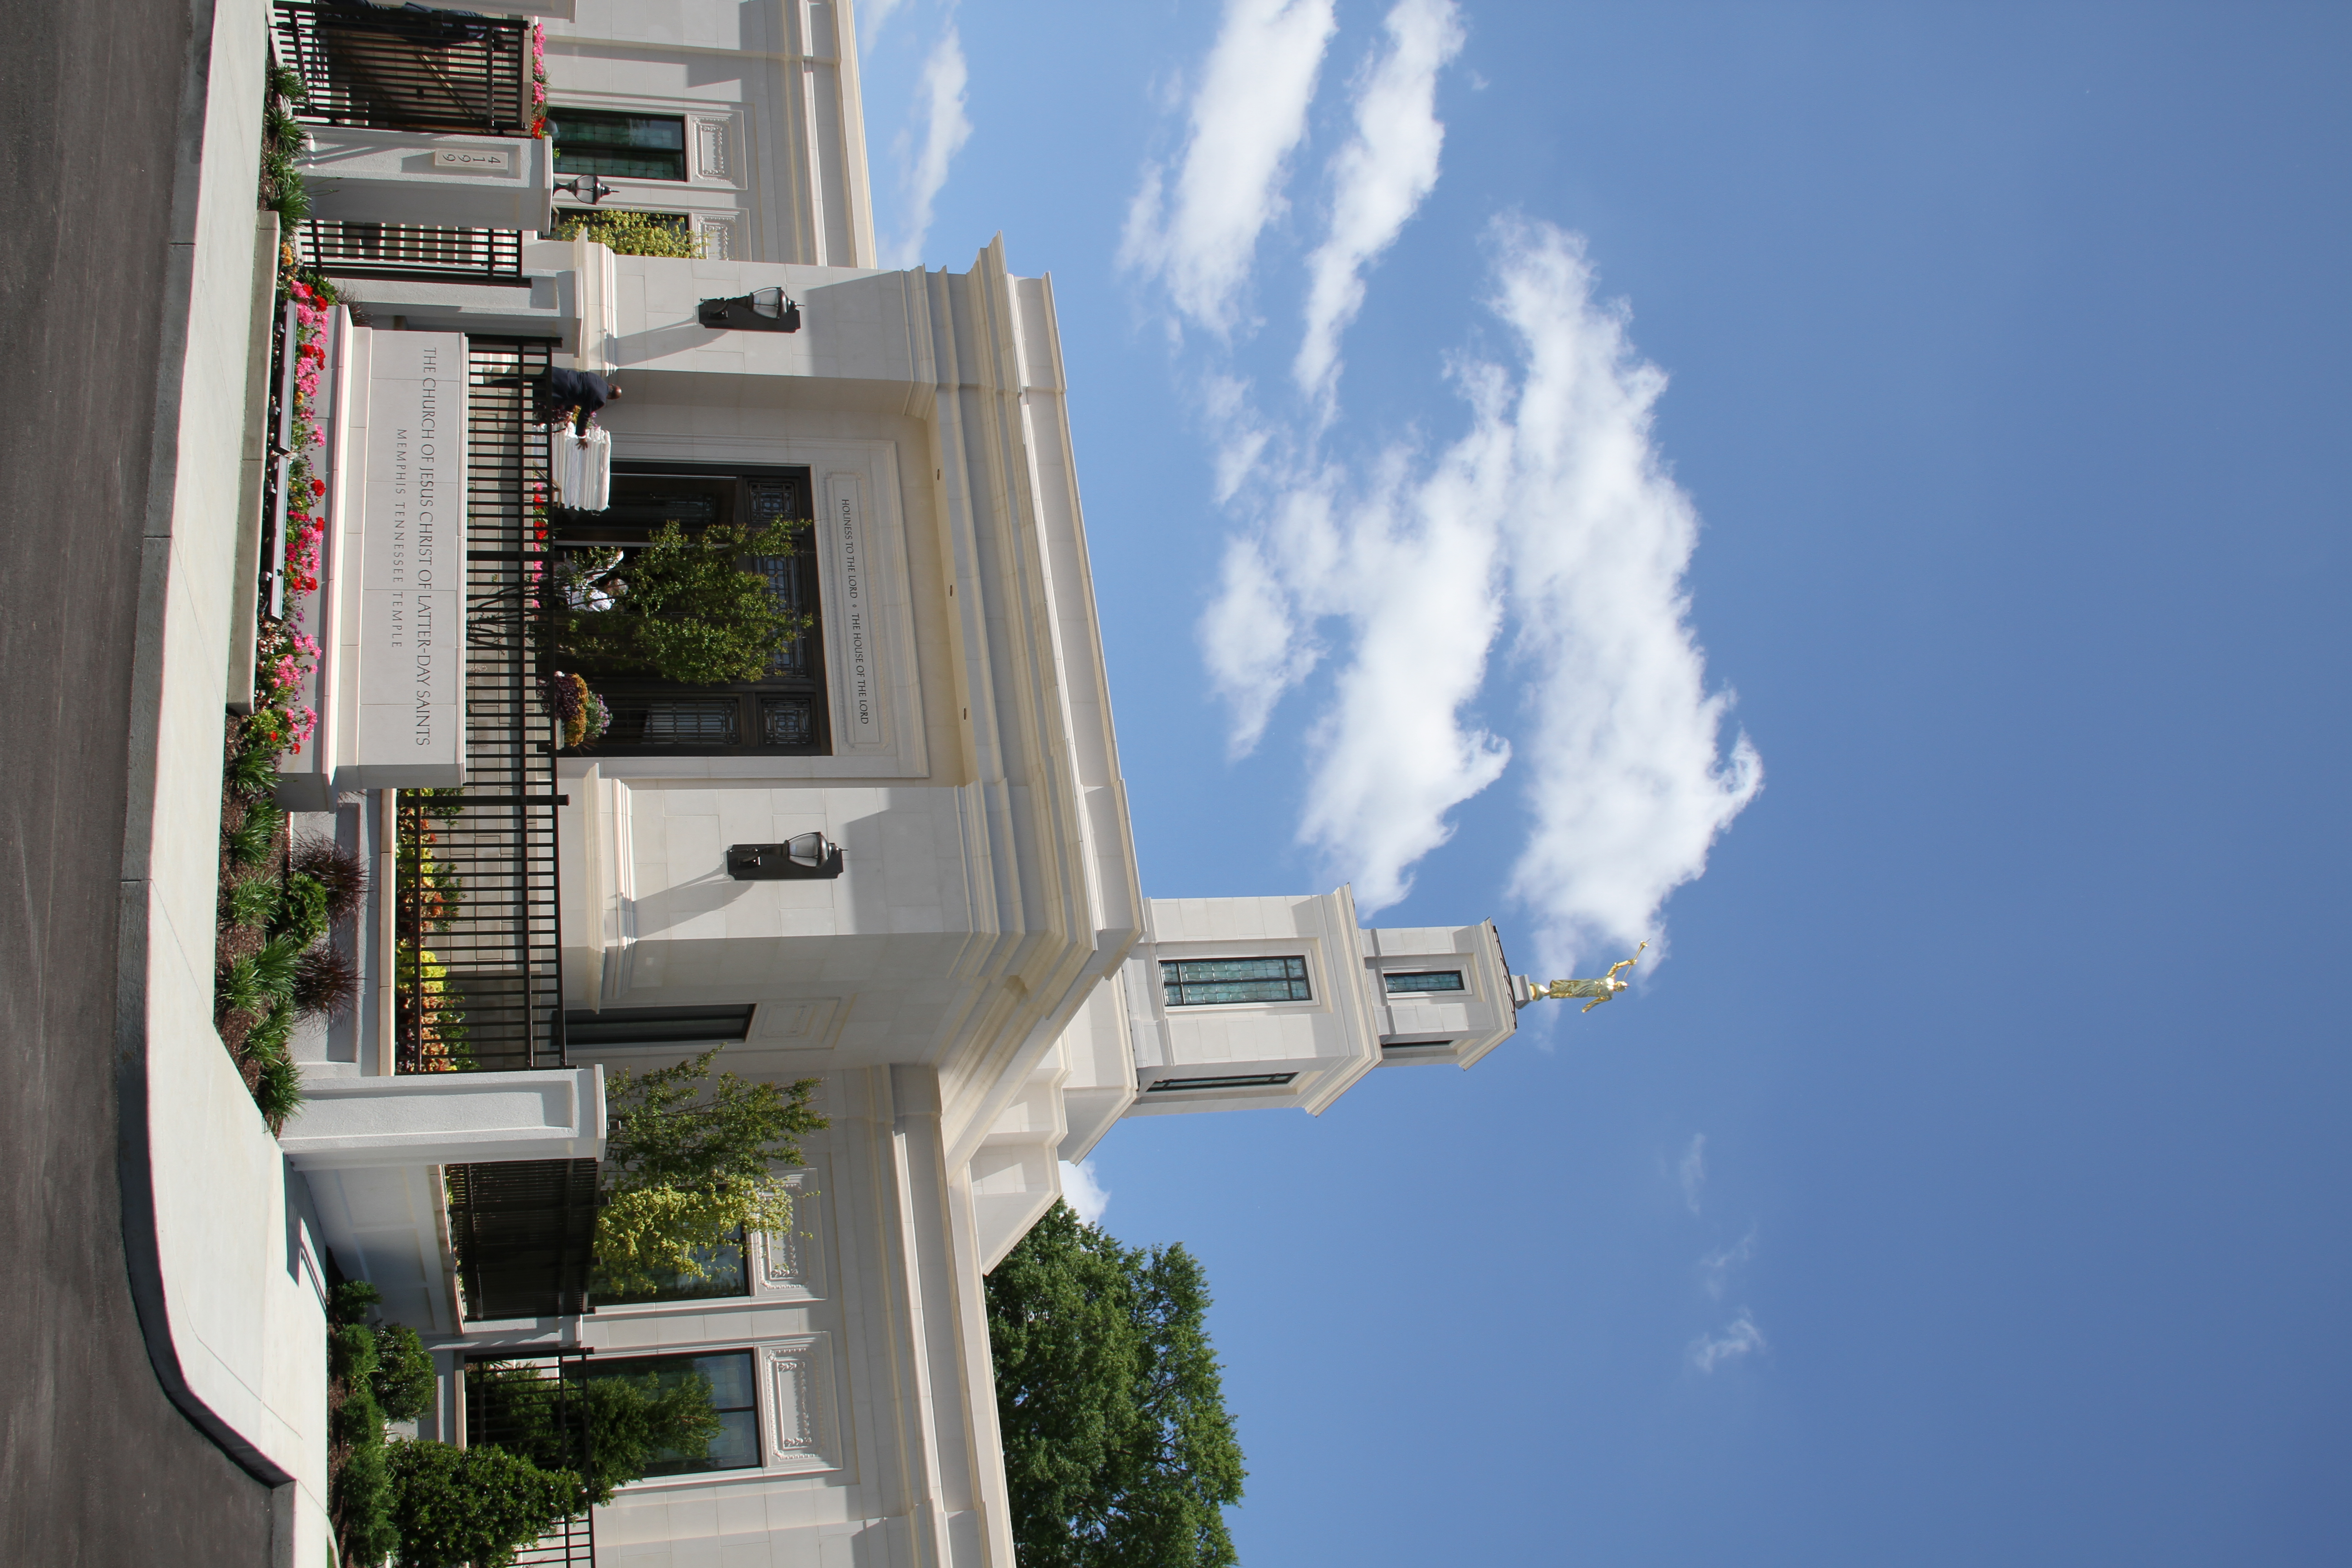 The Memphis Tennessee Temple on May 5, 2019 after it was rededicated by Elder Holland.